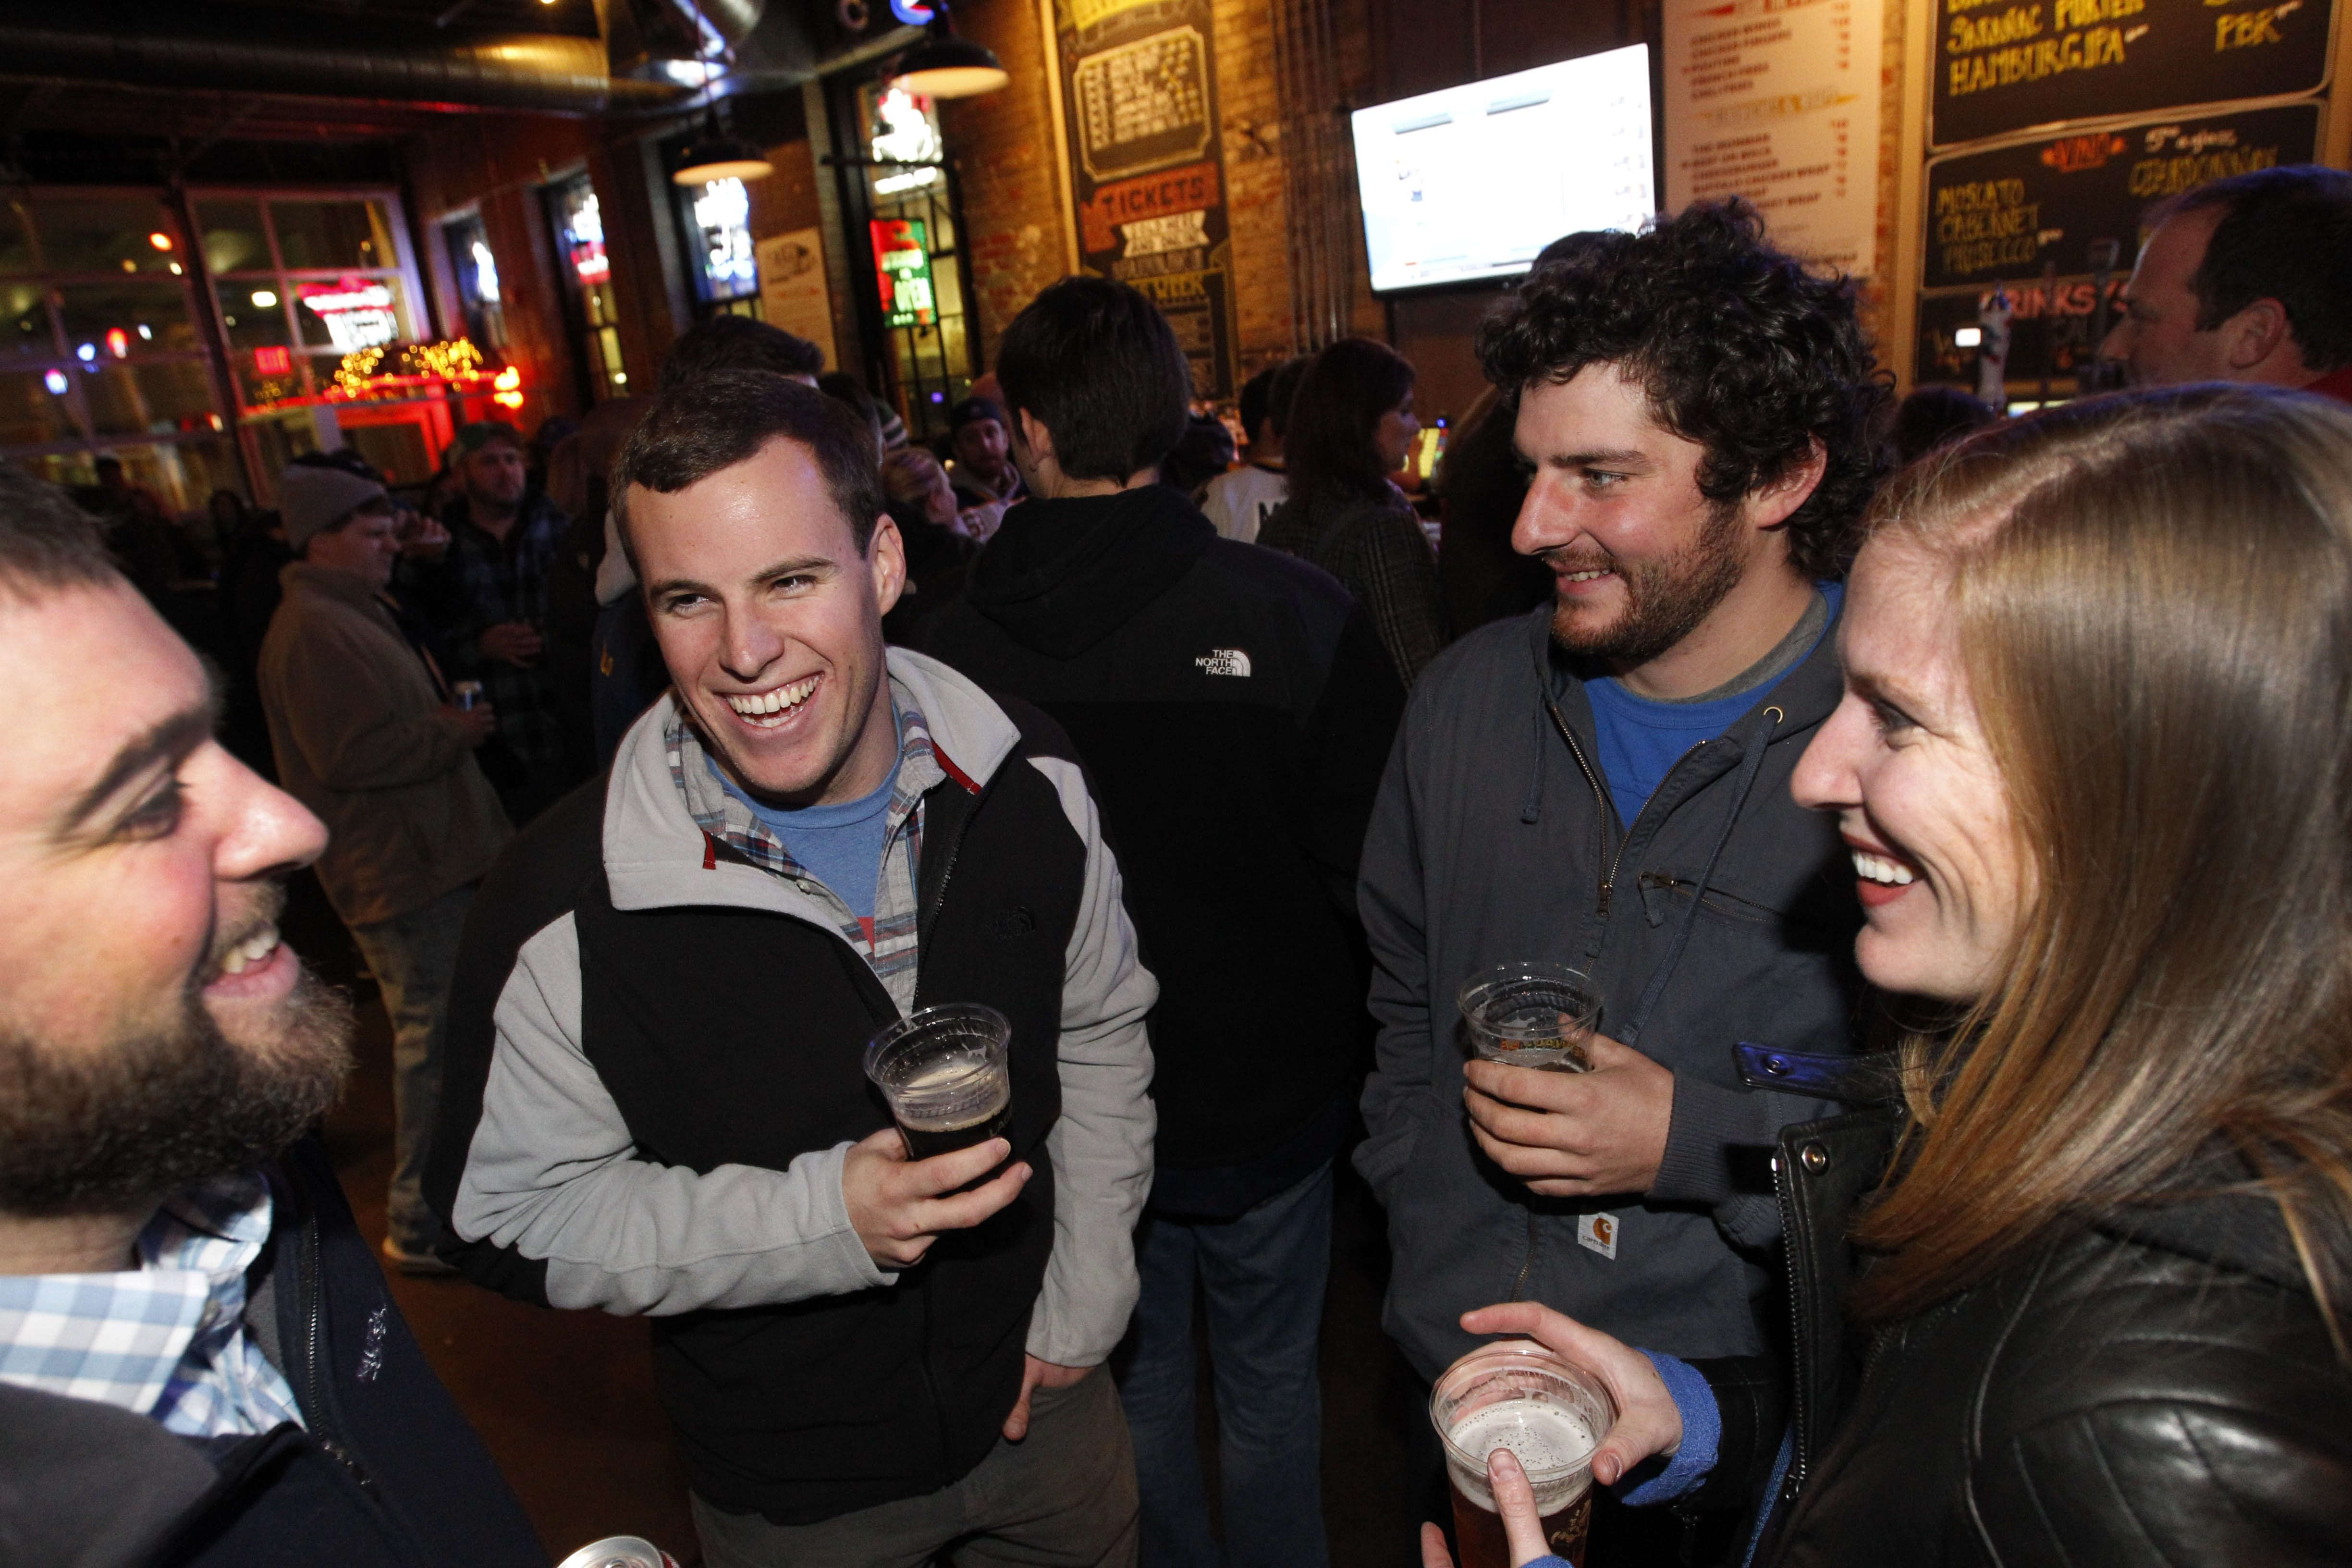 Grand Island native Chris Stessing, second from left, now in Washington D.C., parties at Buffalo Iron Works on Wed- nesday with brother Mike Dedario, left, friend Peter Costello of Youngstown and a cousin, Ashley Chassar of Lewiston.